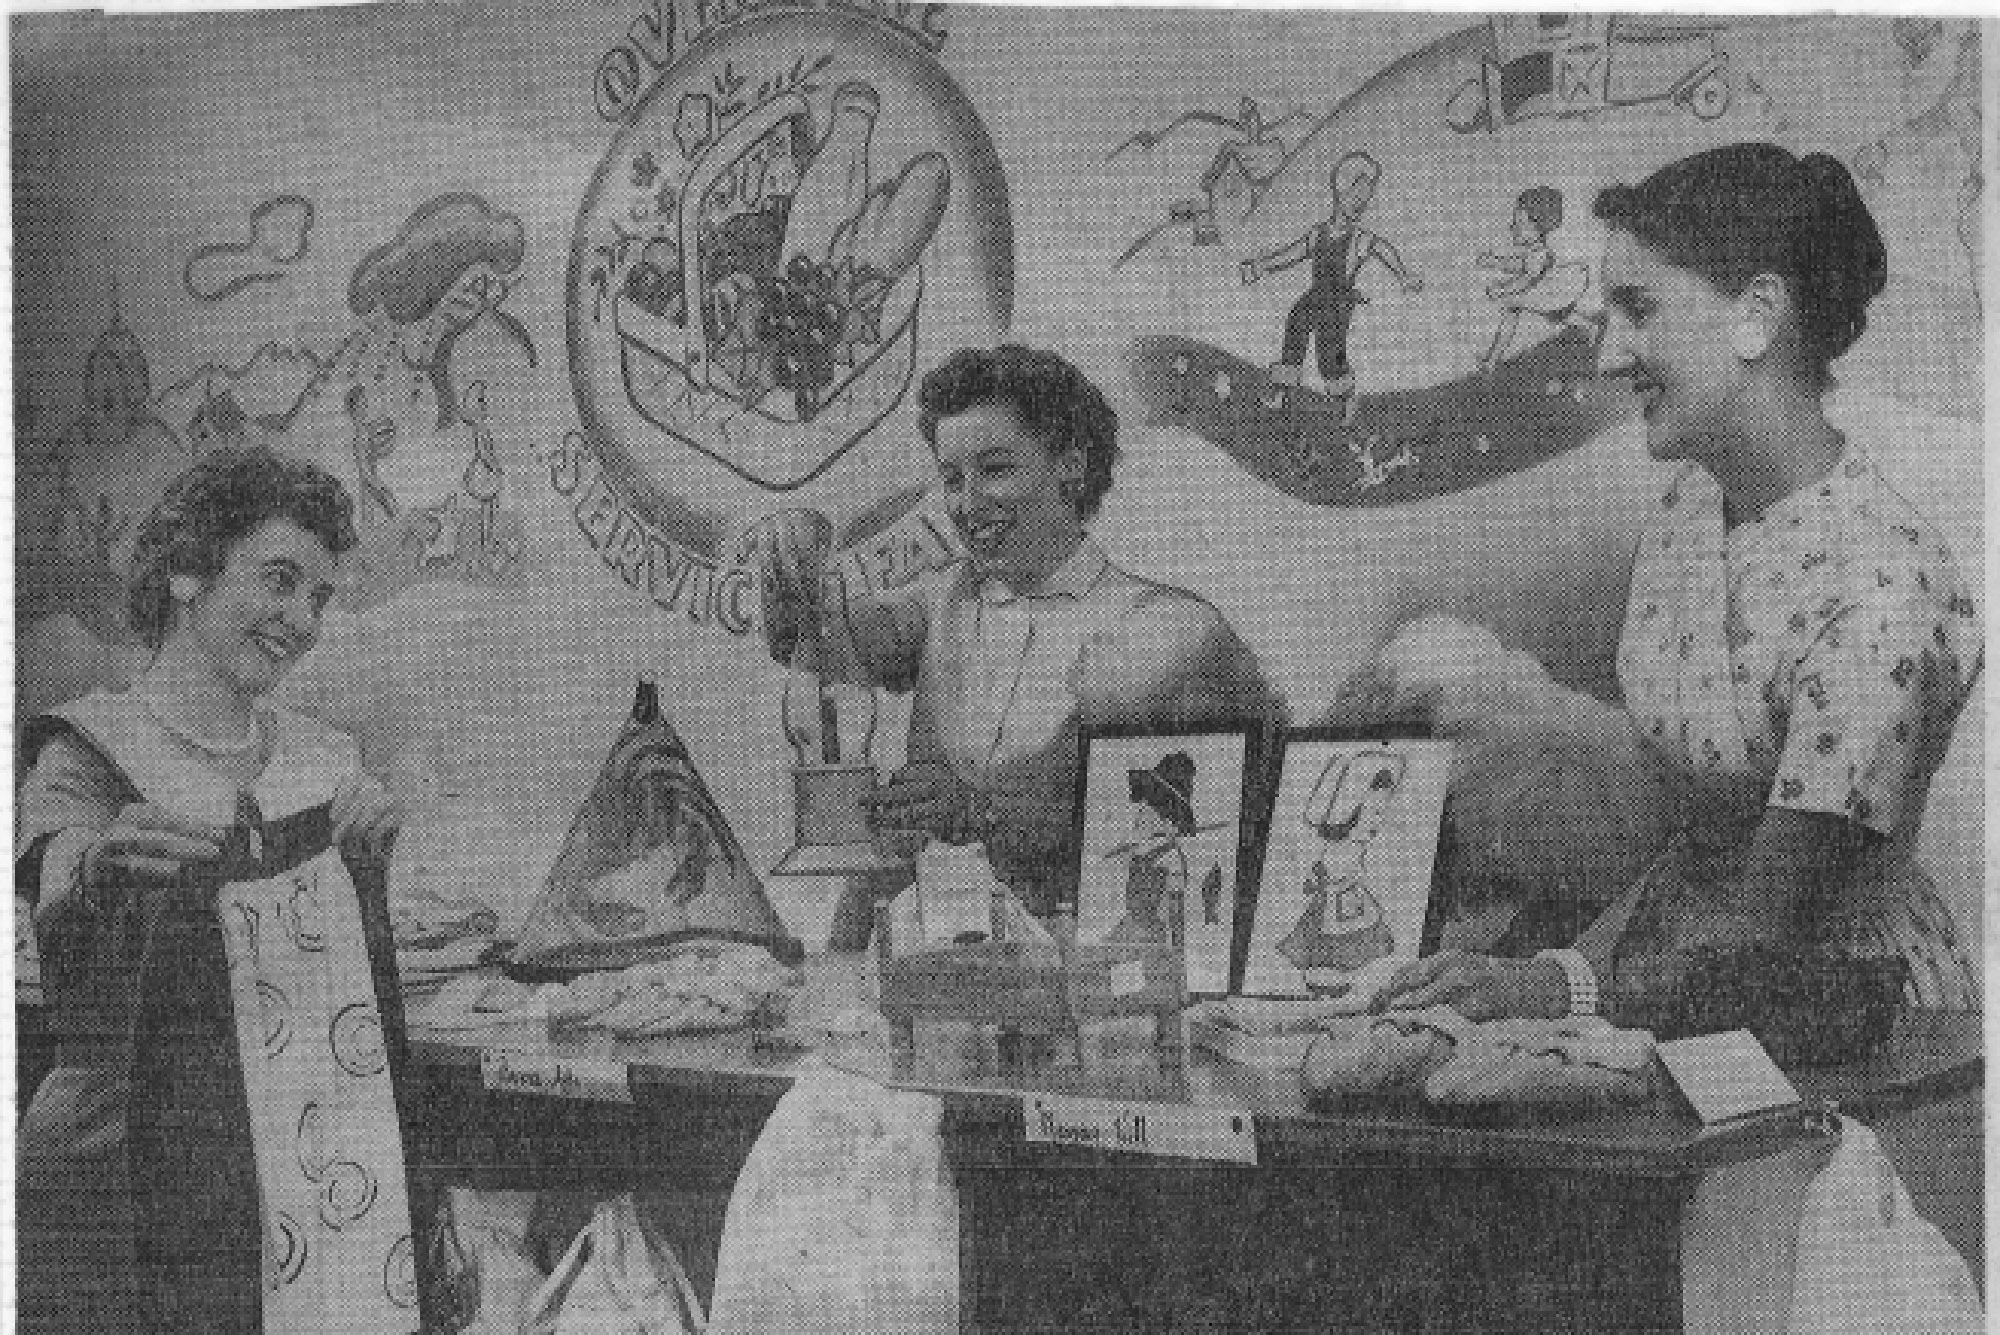 In 1956, the Thrift Shop was the organization's major fundraiser